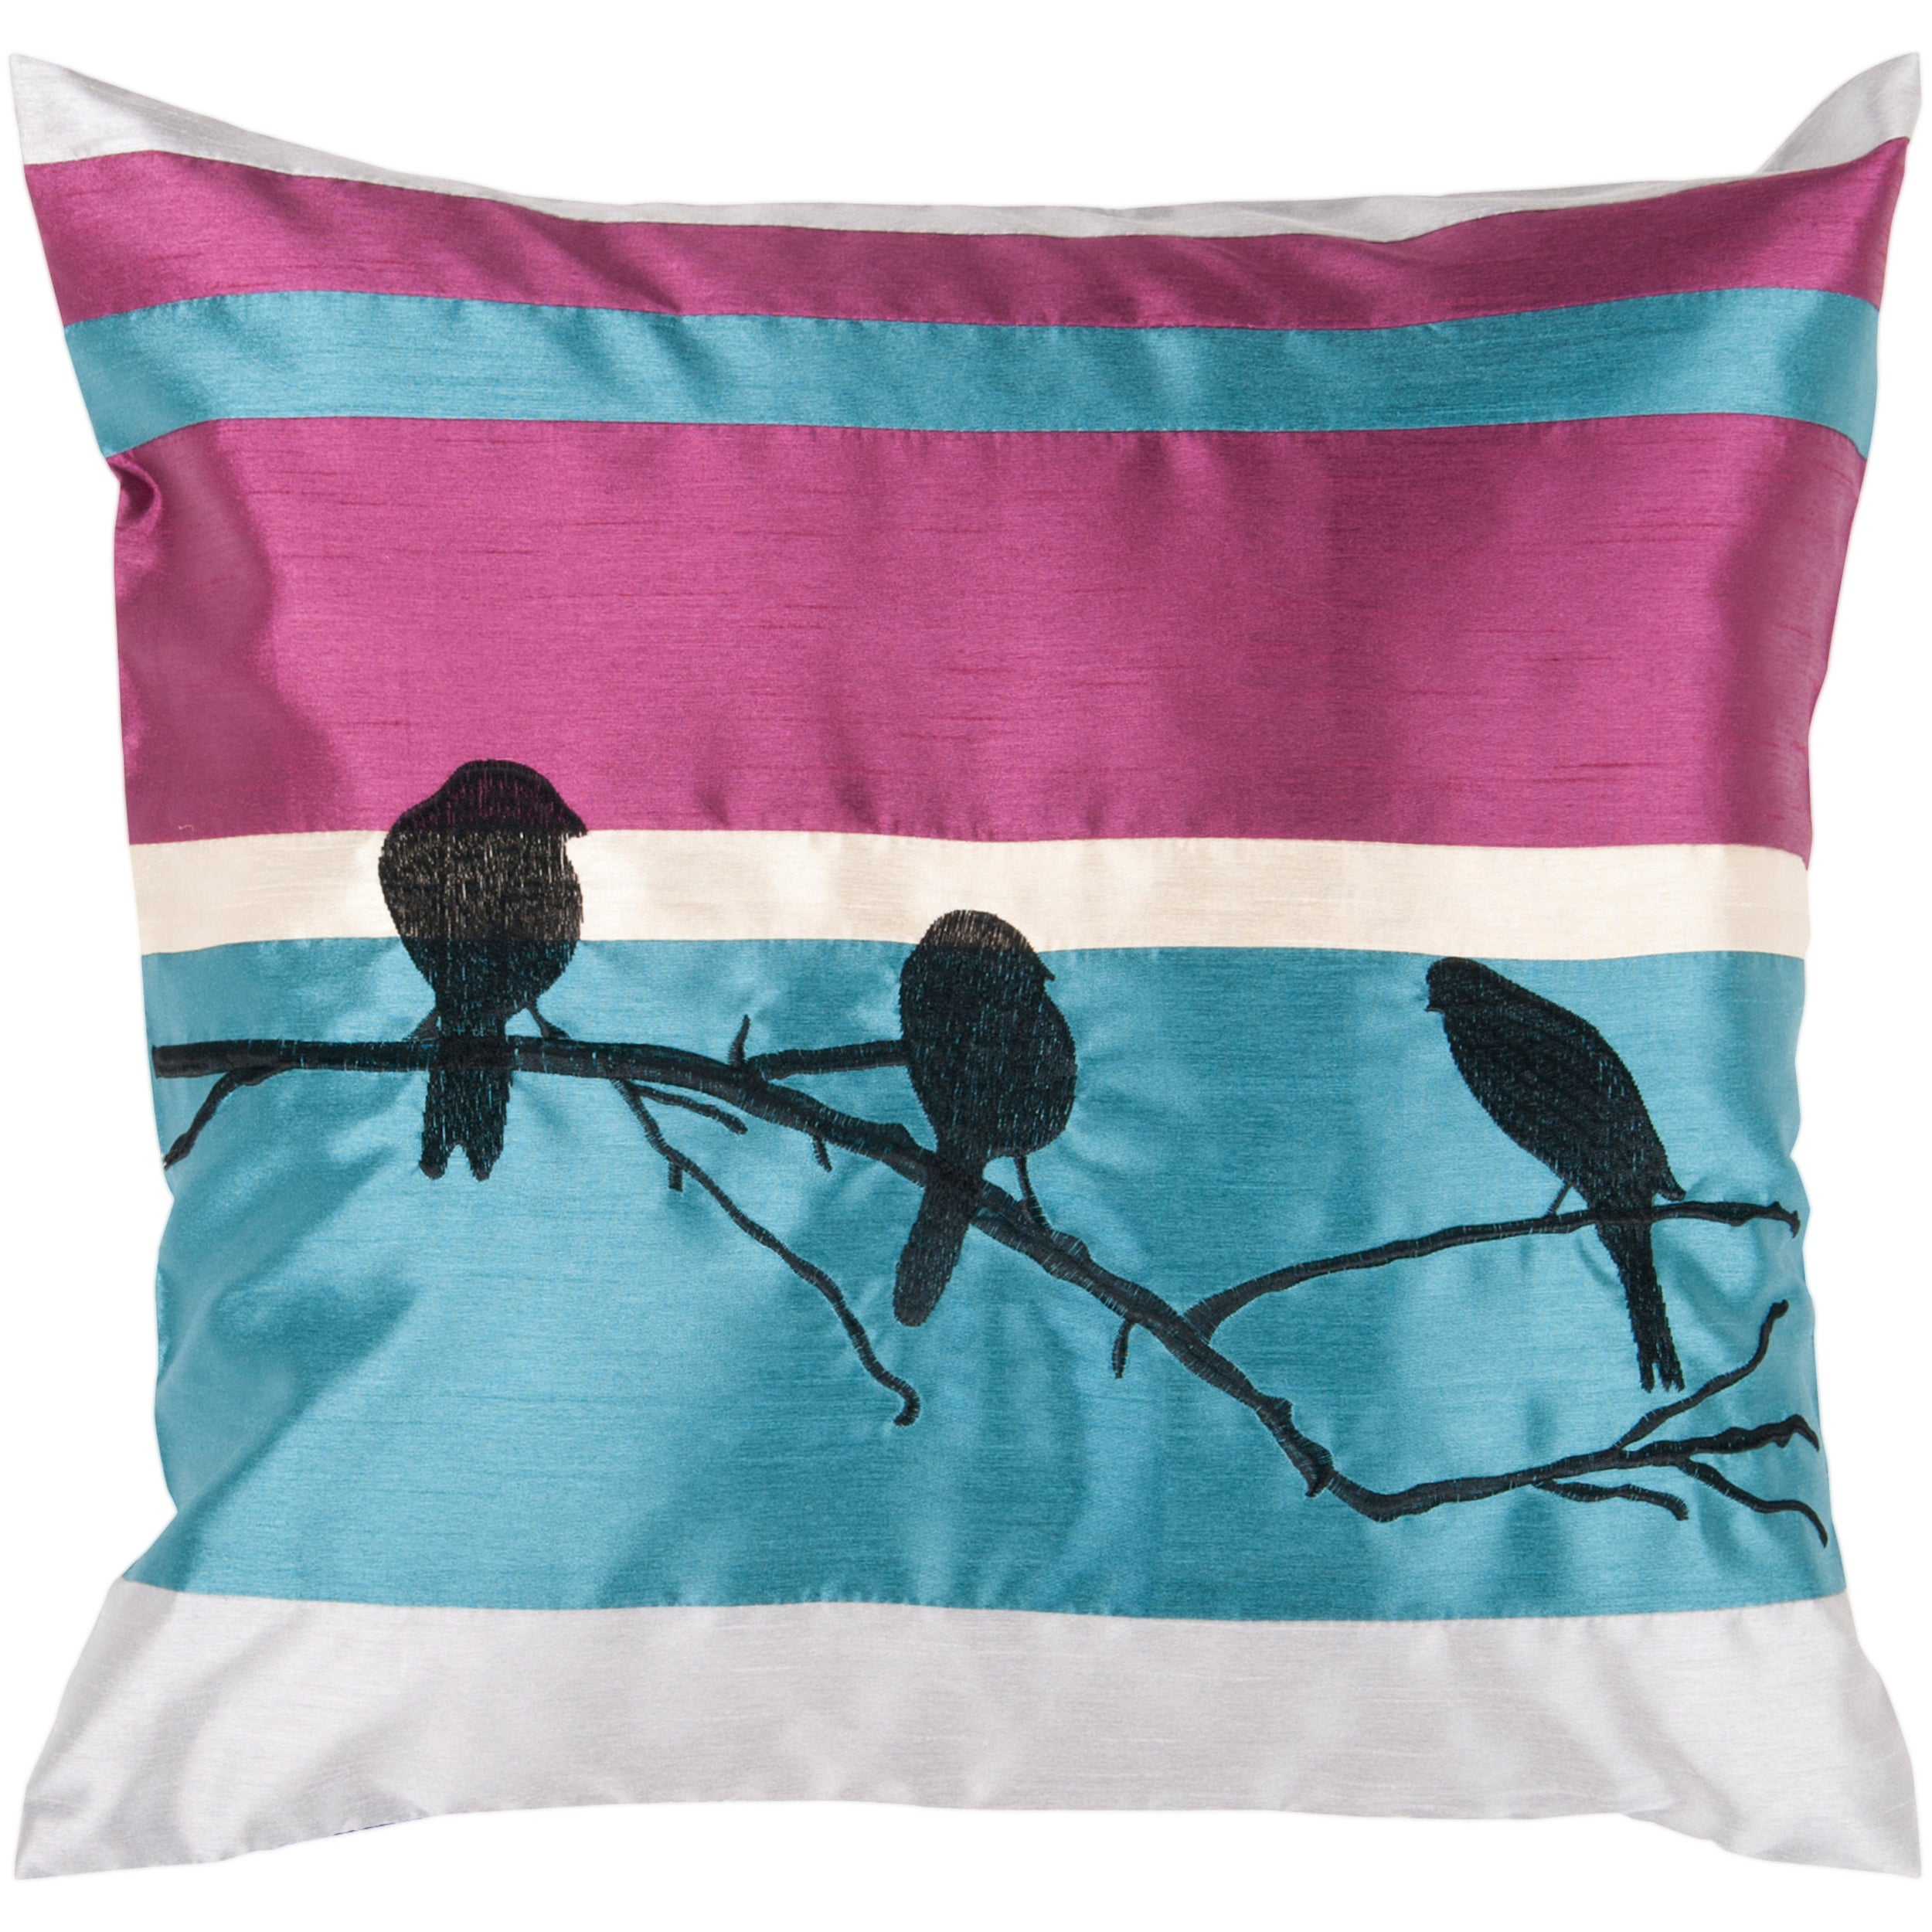 Decorative Ceres 18-inch Down Pillow